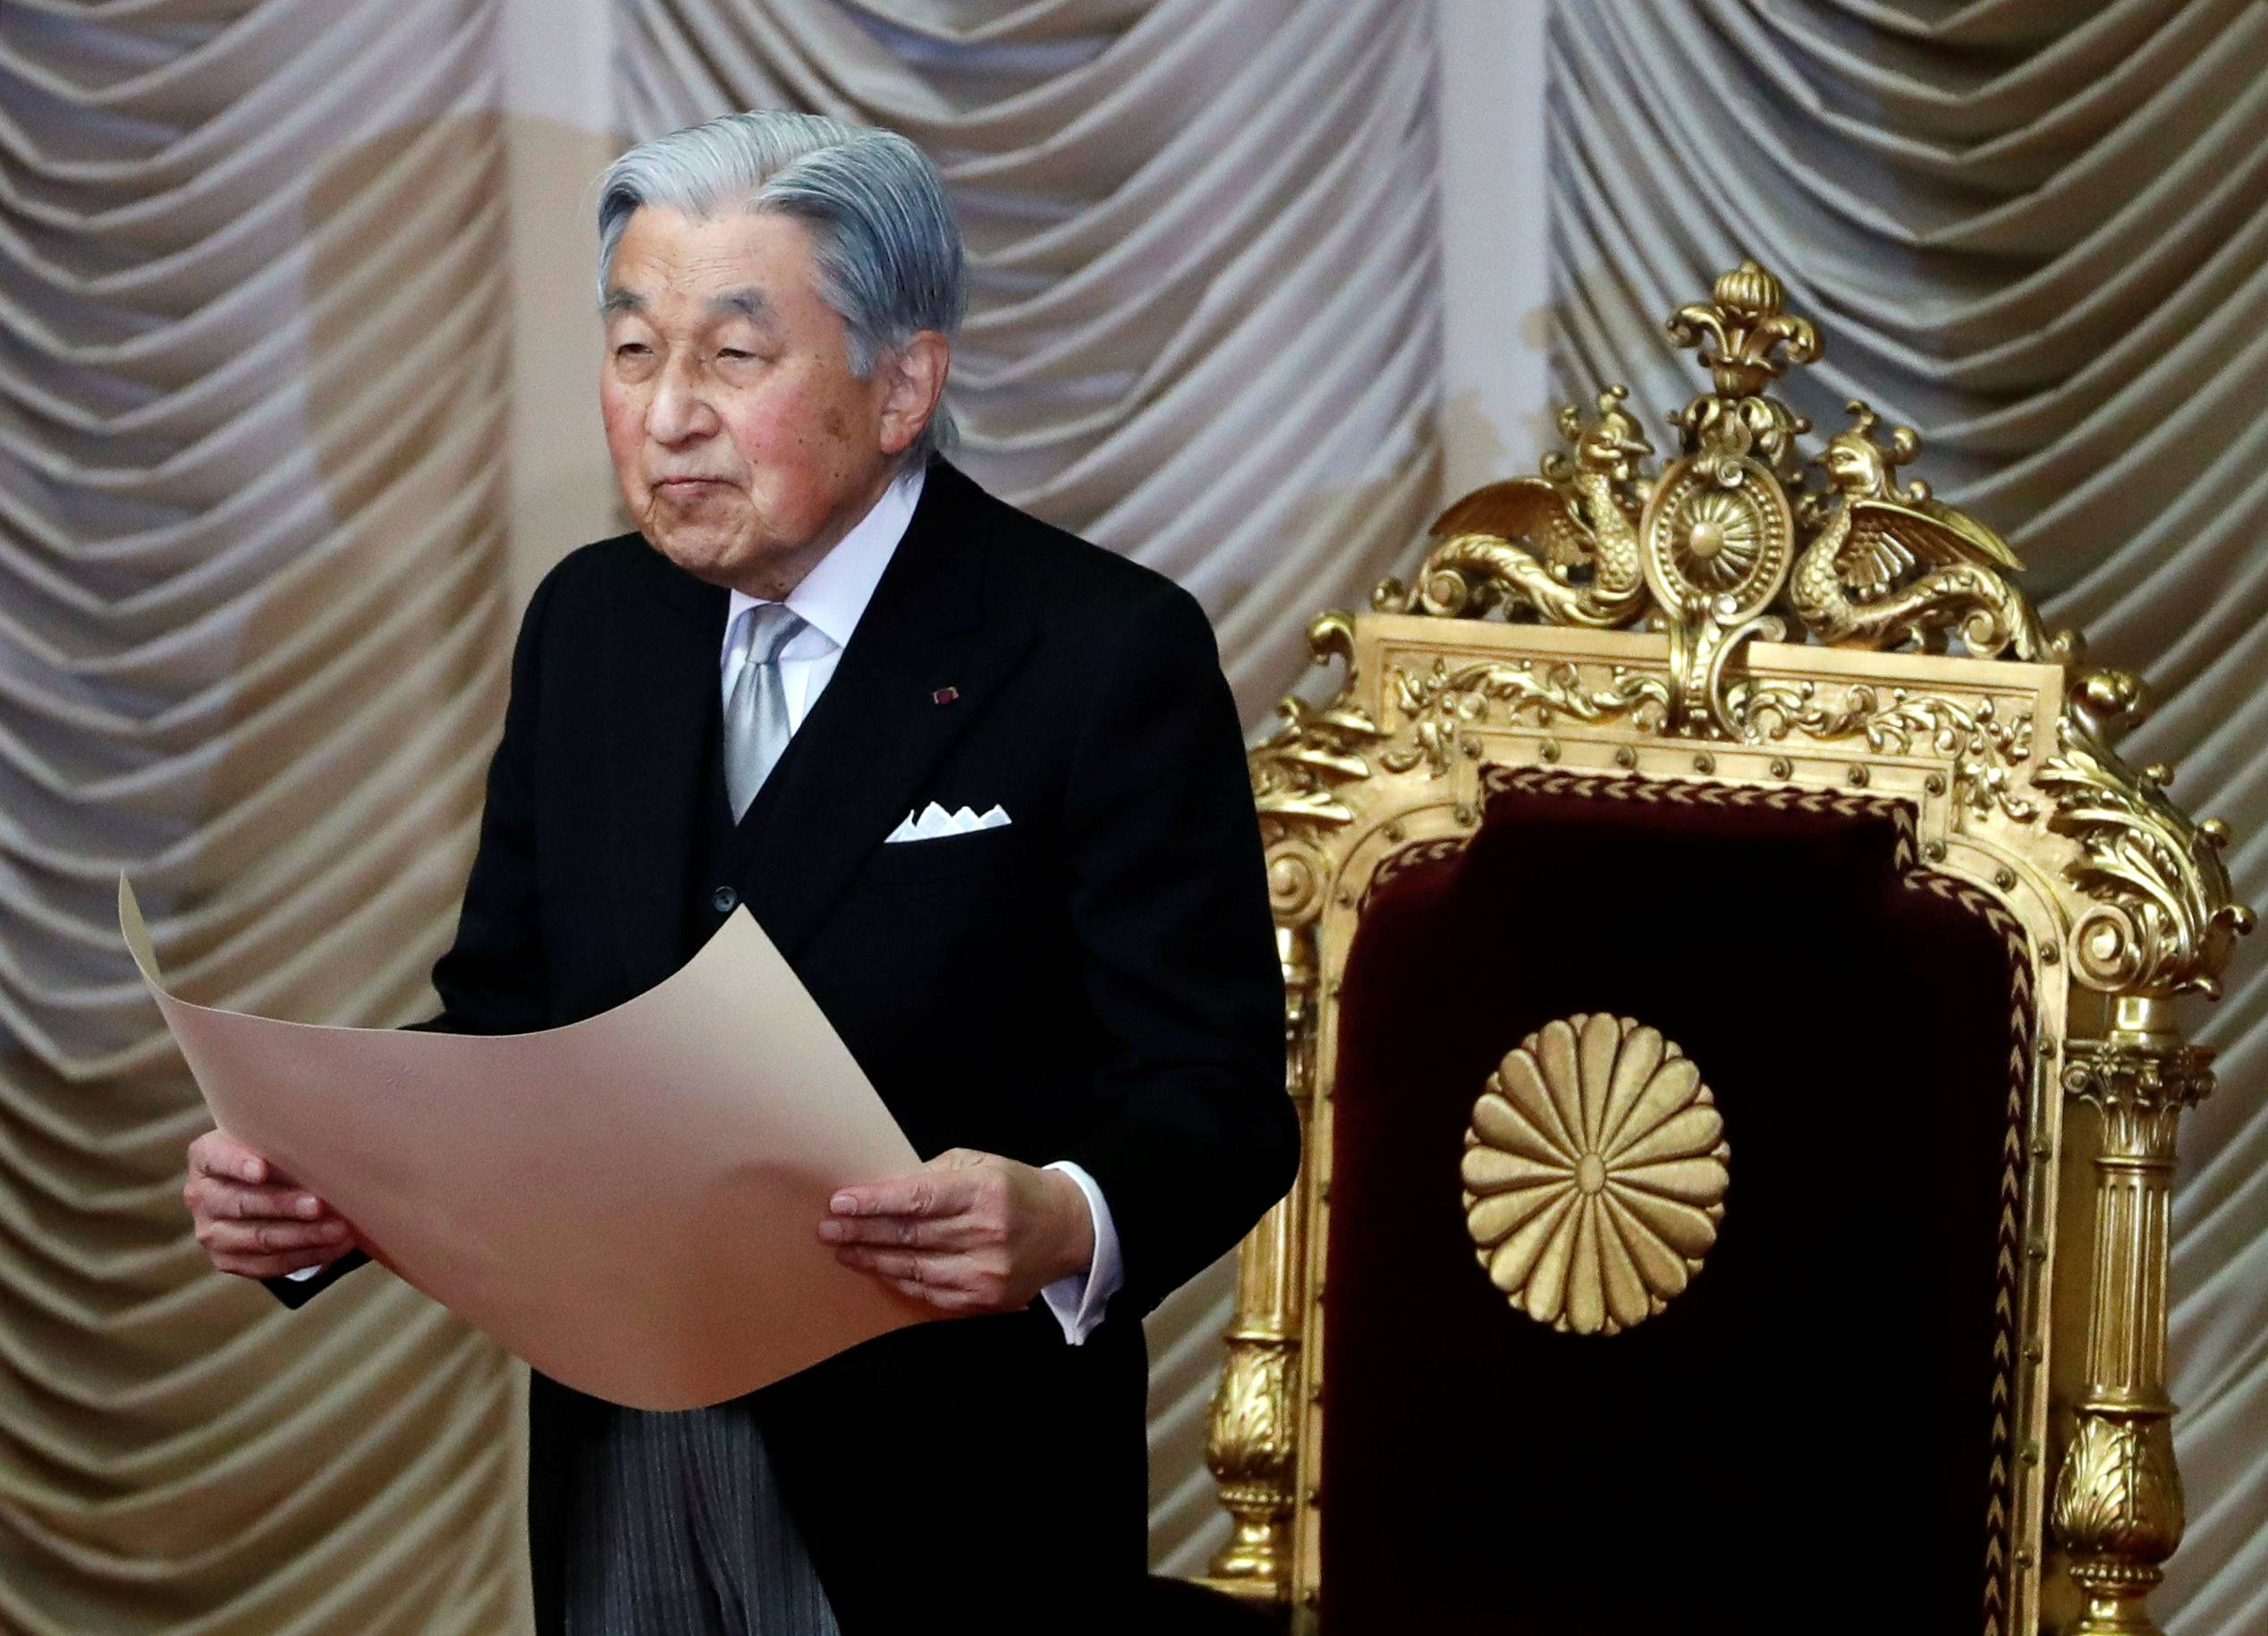 Emperor Akihito declares the opening of an ordinary session of parliament in Tokyo in January 2019. South Korea decided ahead of its president's 1990 Japan visit to call for a stronger apology from the emperor than given by his predecessor for the 1910-1945 colonization of the Korean Peninsula, according to diplomatic records declassified in Seoul on Monday. | REUTERS